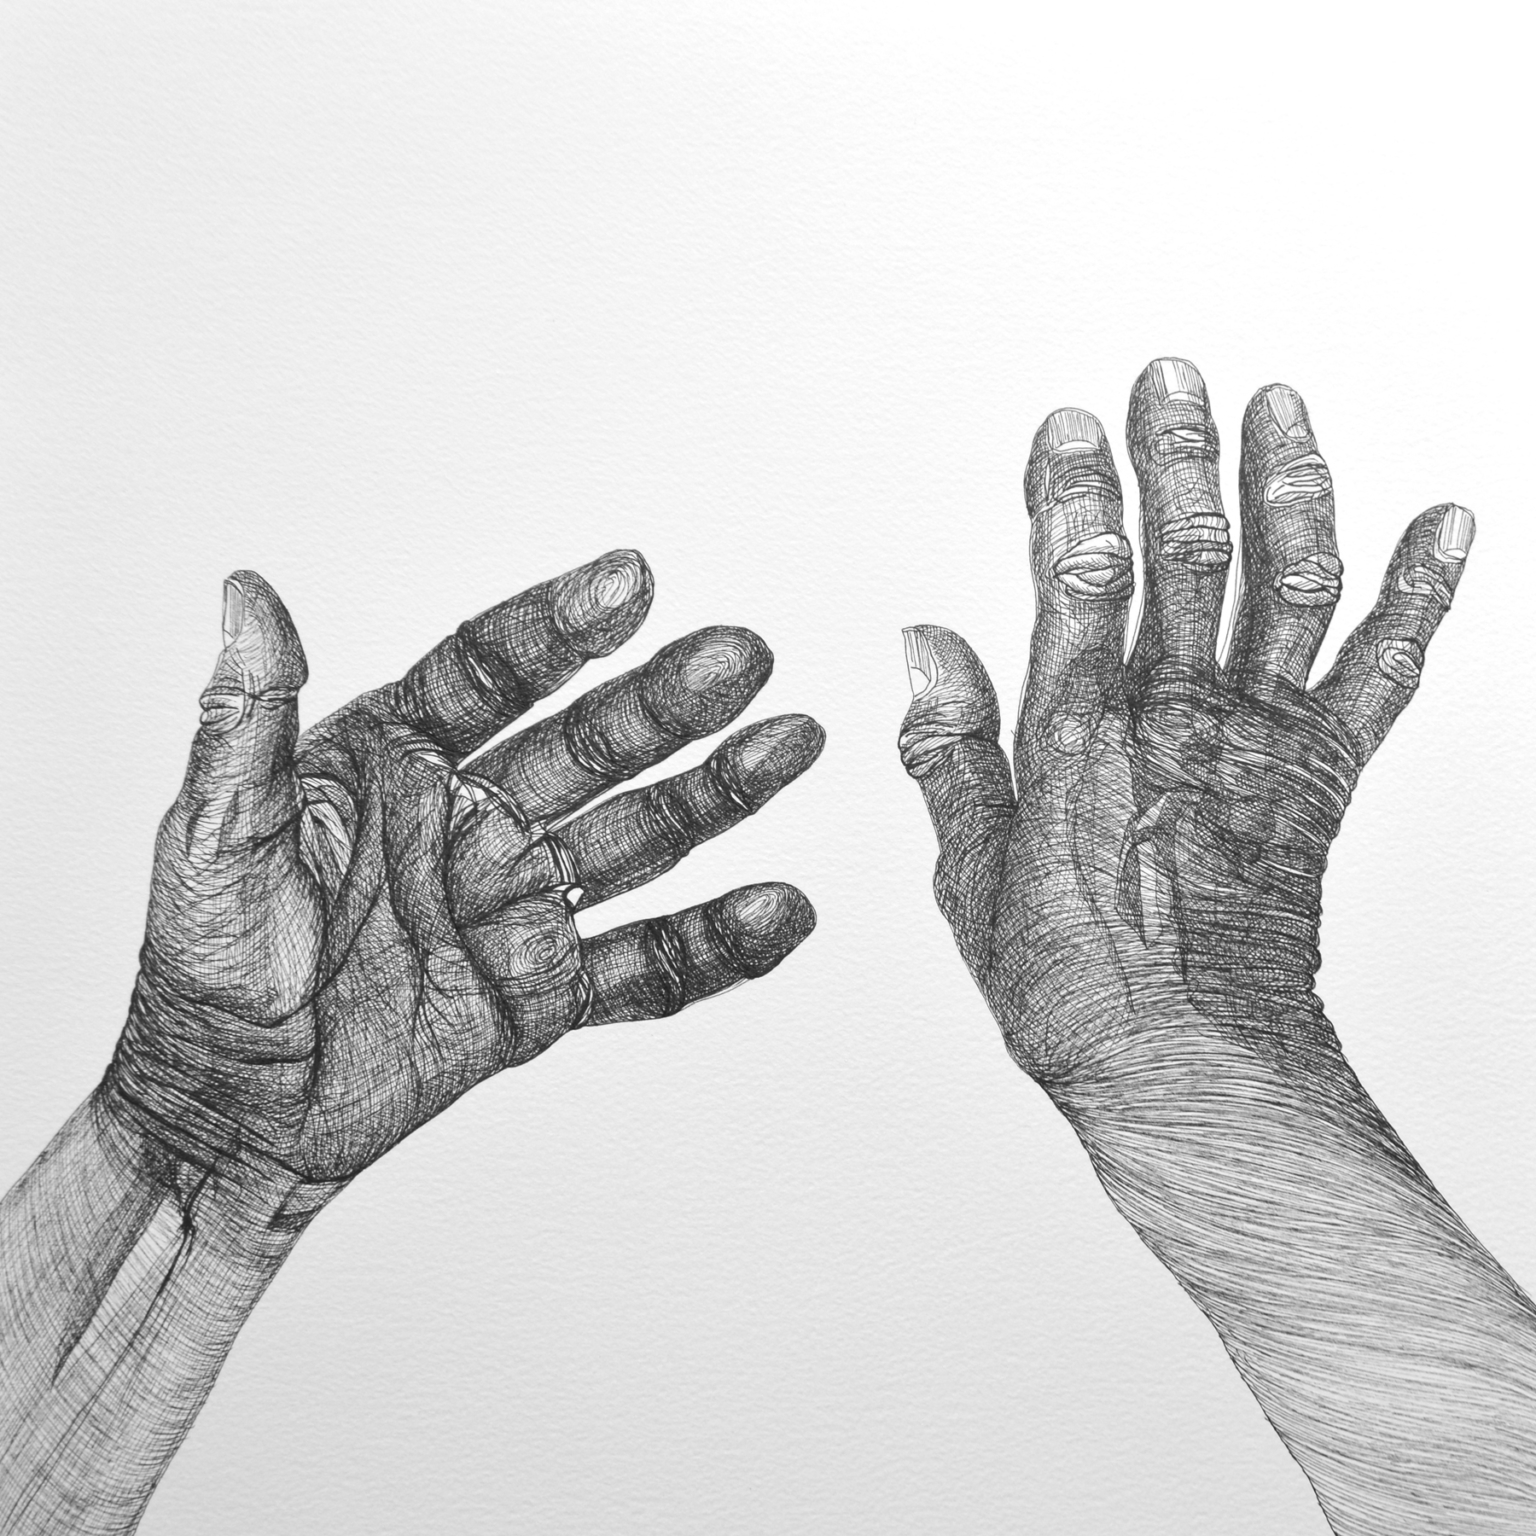 Cally Trench, Hands 4 (2018), Ink on paper, 40 x 40 cm